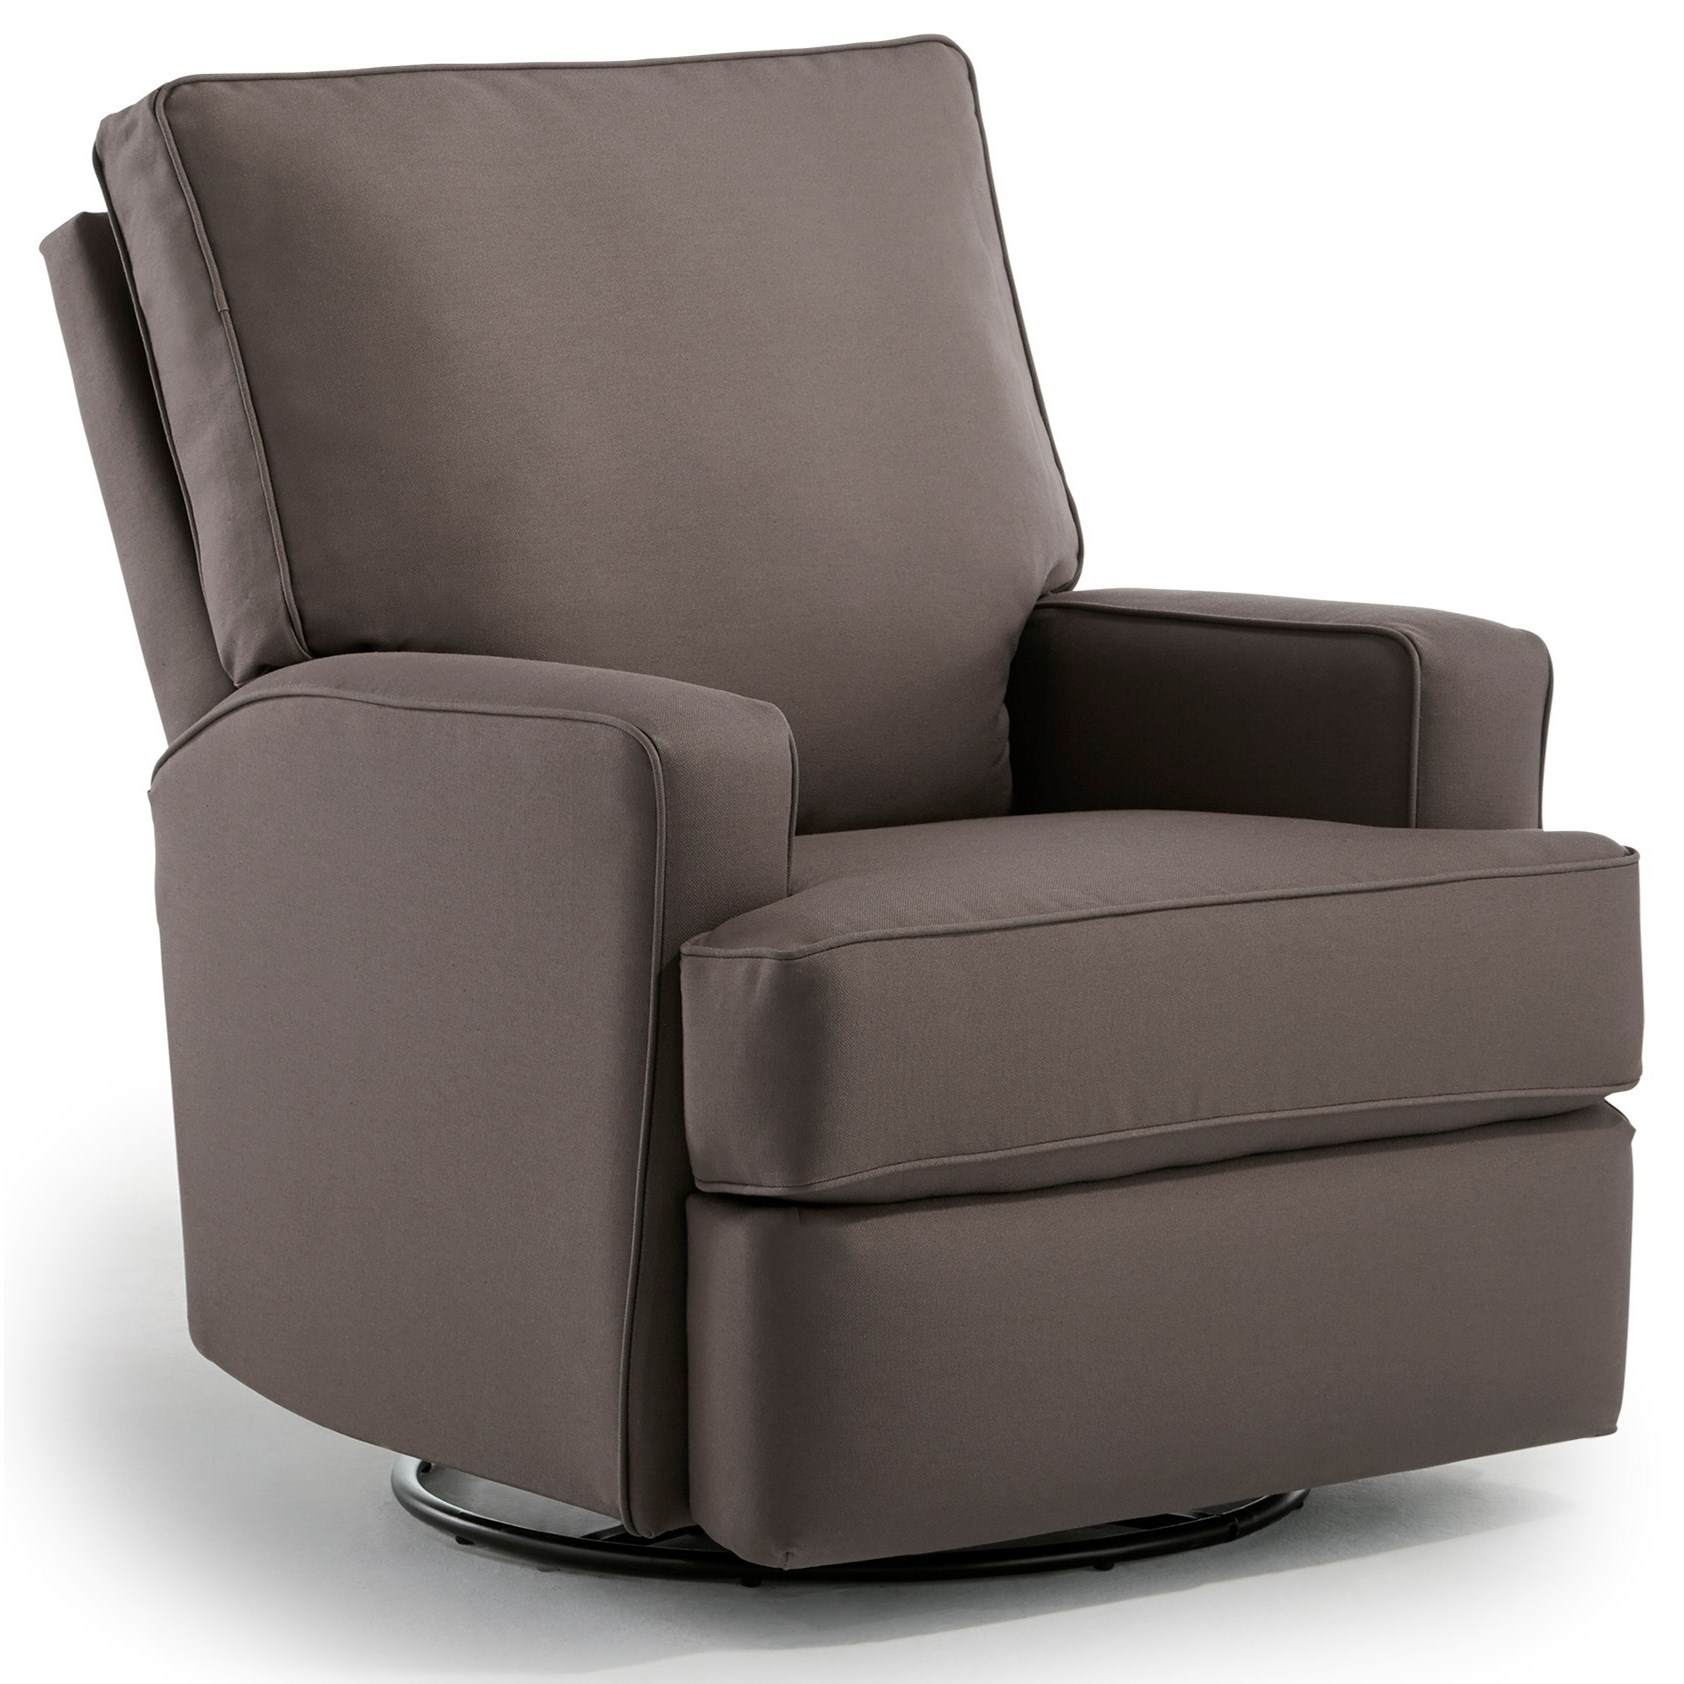 Kersey Swivel Glider Recliner w/ Inside Handle by Best Home Furnishings at Johnny Janosik